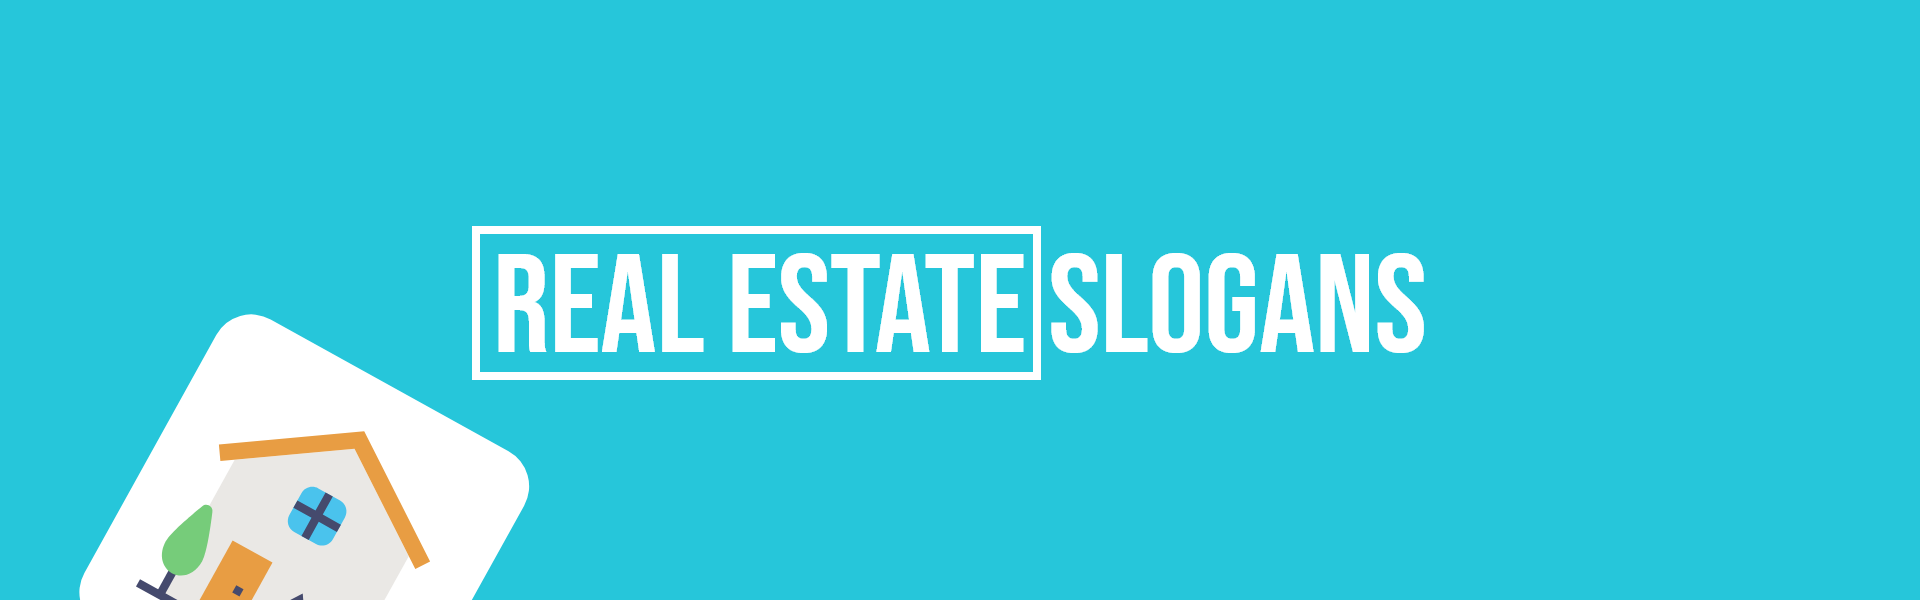 real estate slogans taglines